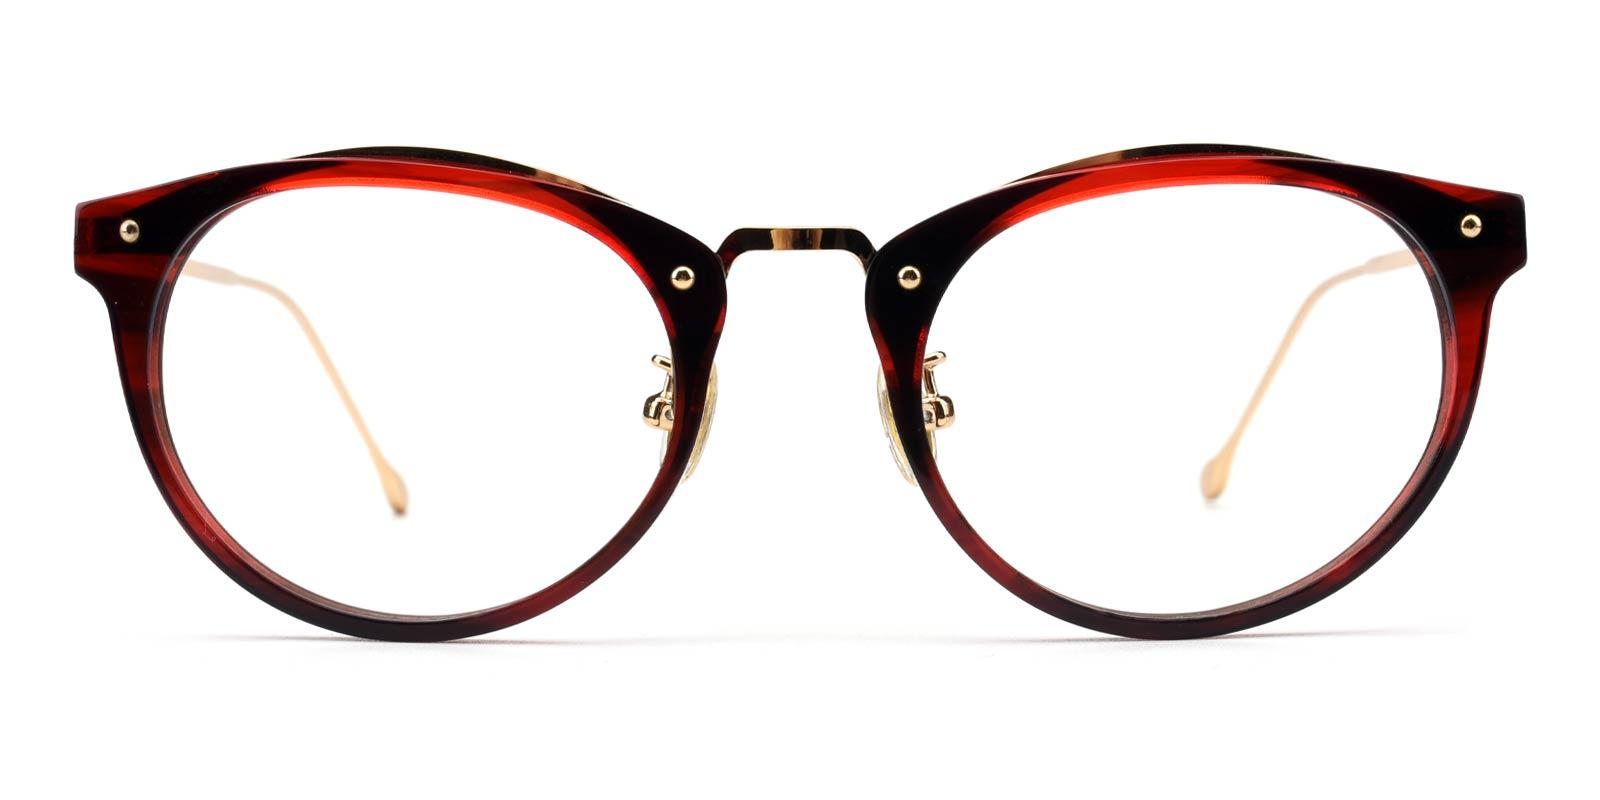 Beverly-Red-Oval-Metal-Eyeglasses-additional2